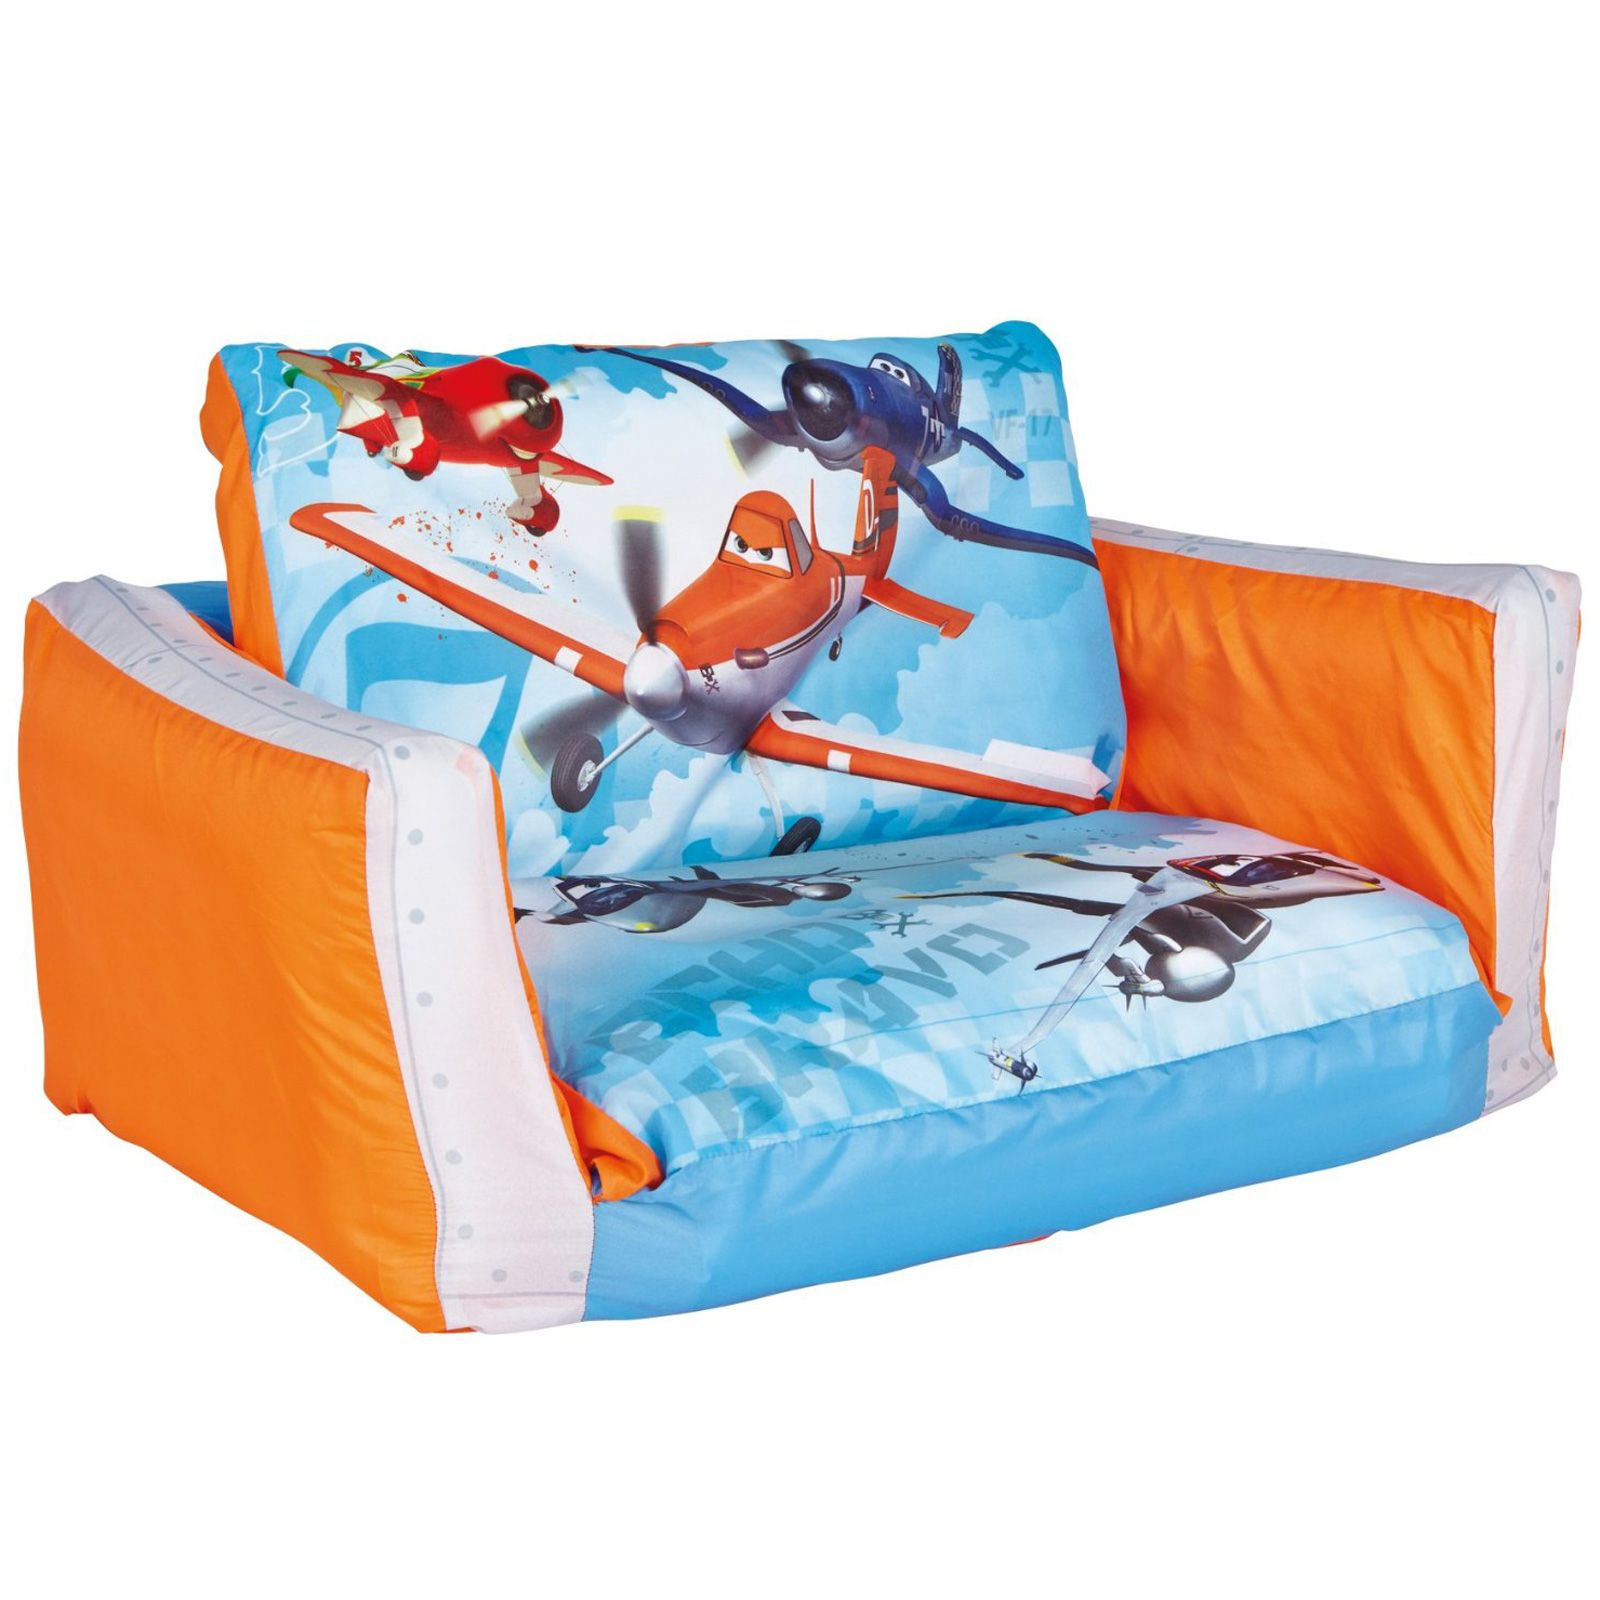 Amazing DISNEY PLANES BEDDING AND BEDROOM ACCESSORIES FREE DELIVERY